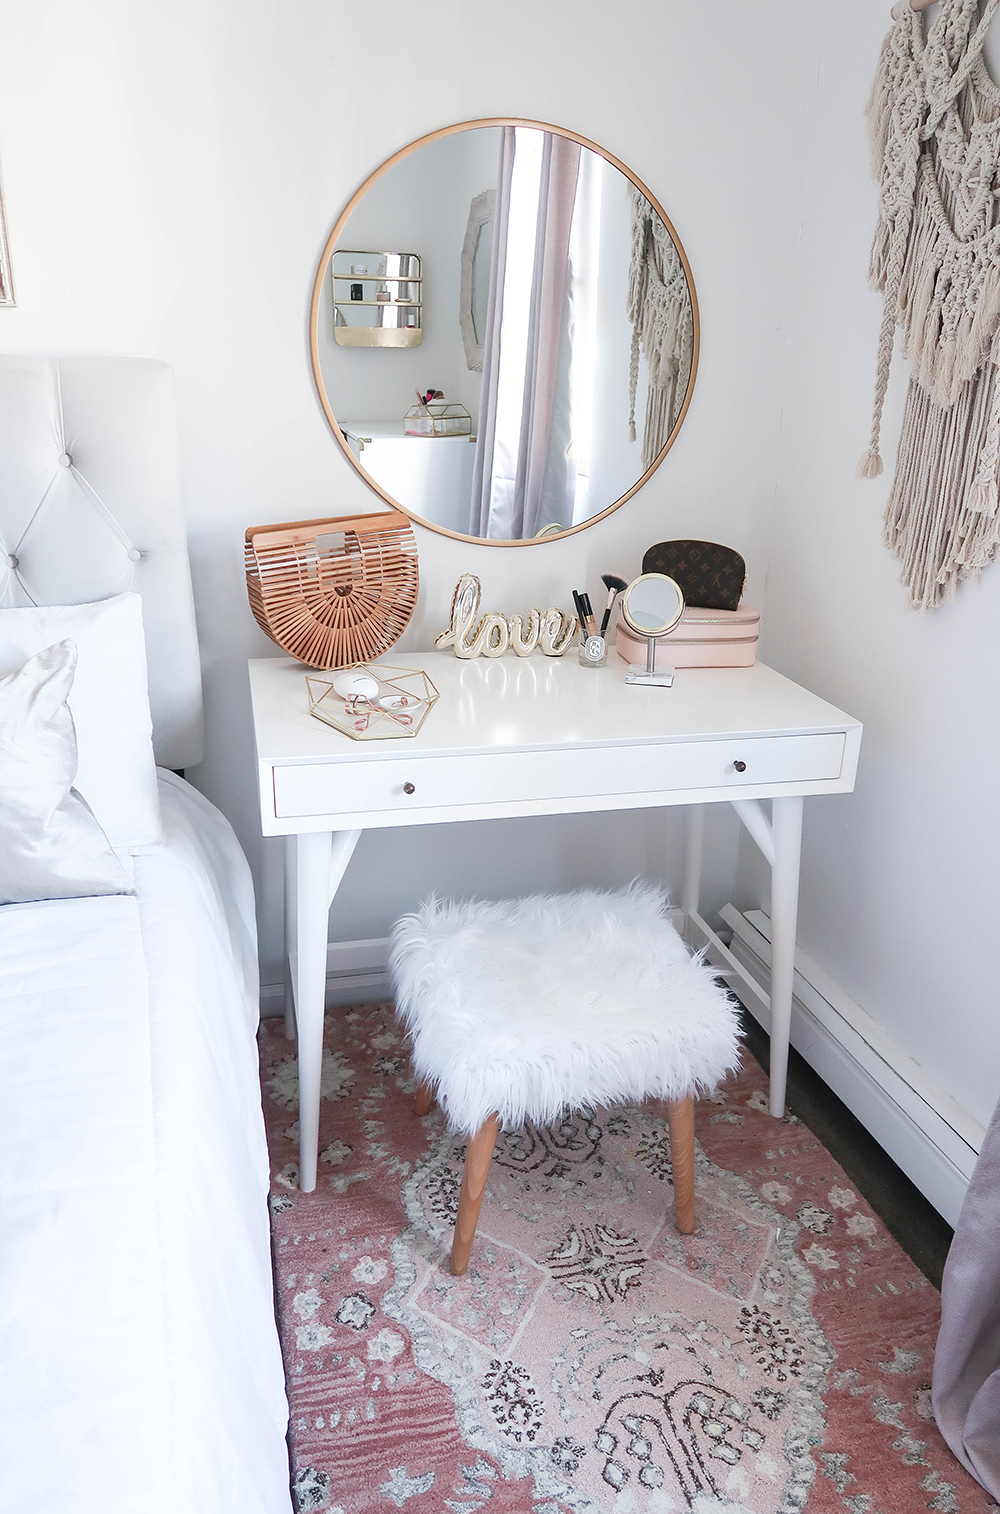 Styling A Vanity In A Small Space  Home Decor Ideas